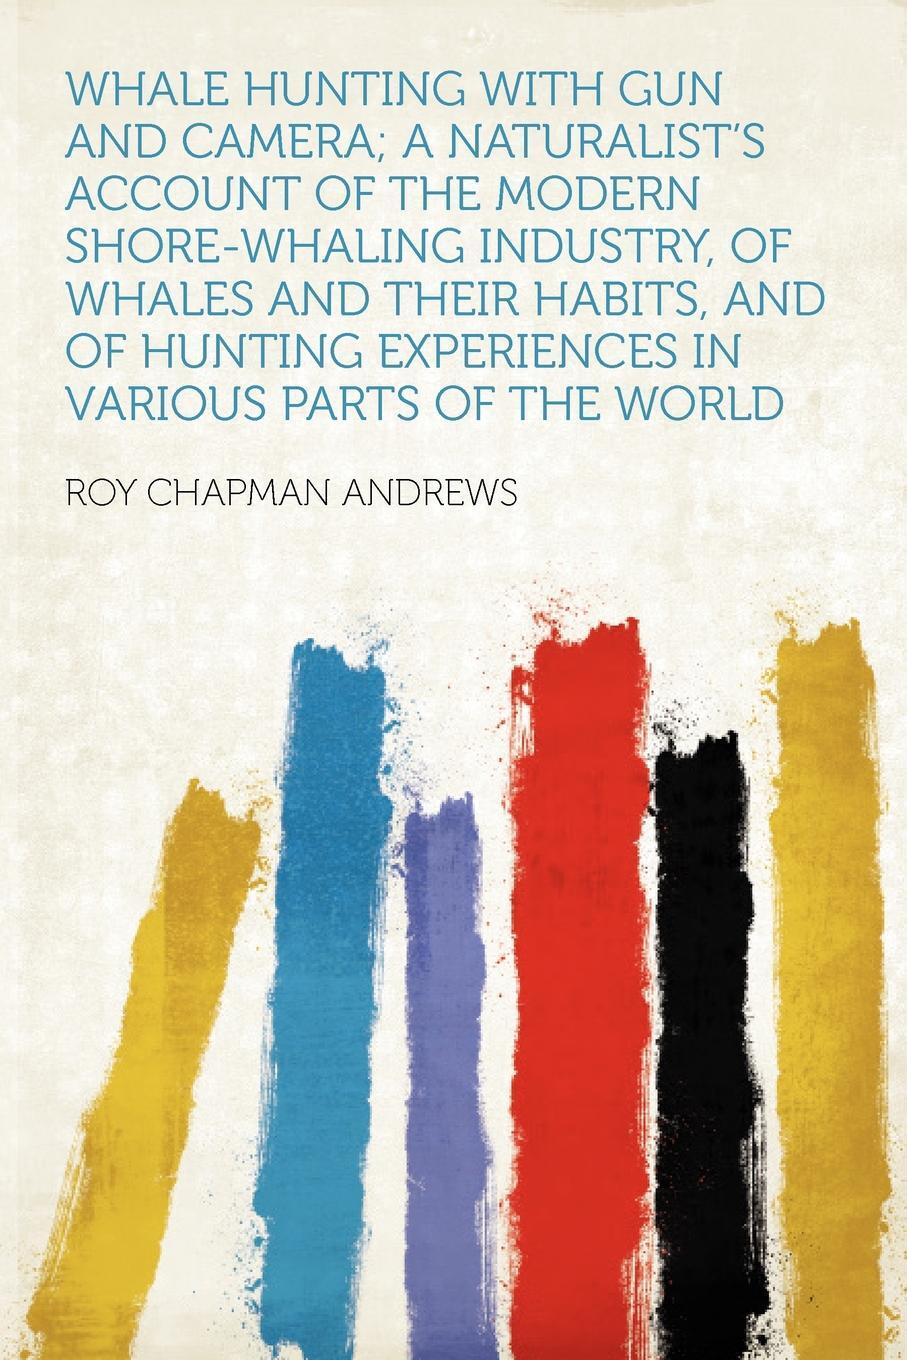 Whale Hunting With Gun and Camera; a Naturalist`s Account of the Modern Shore-whaling Industry, of Whales and Their Habits, and of Hunting Experiences in Various Parts of the World. Roy Chapman Andrews